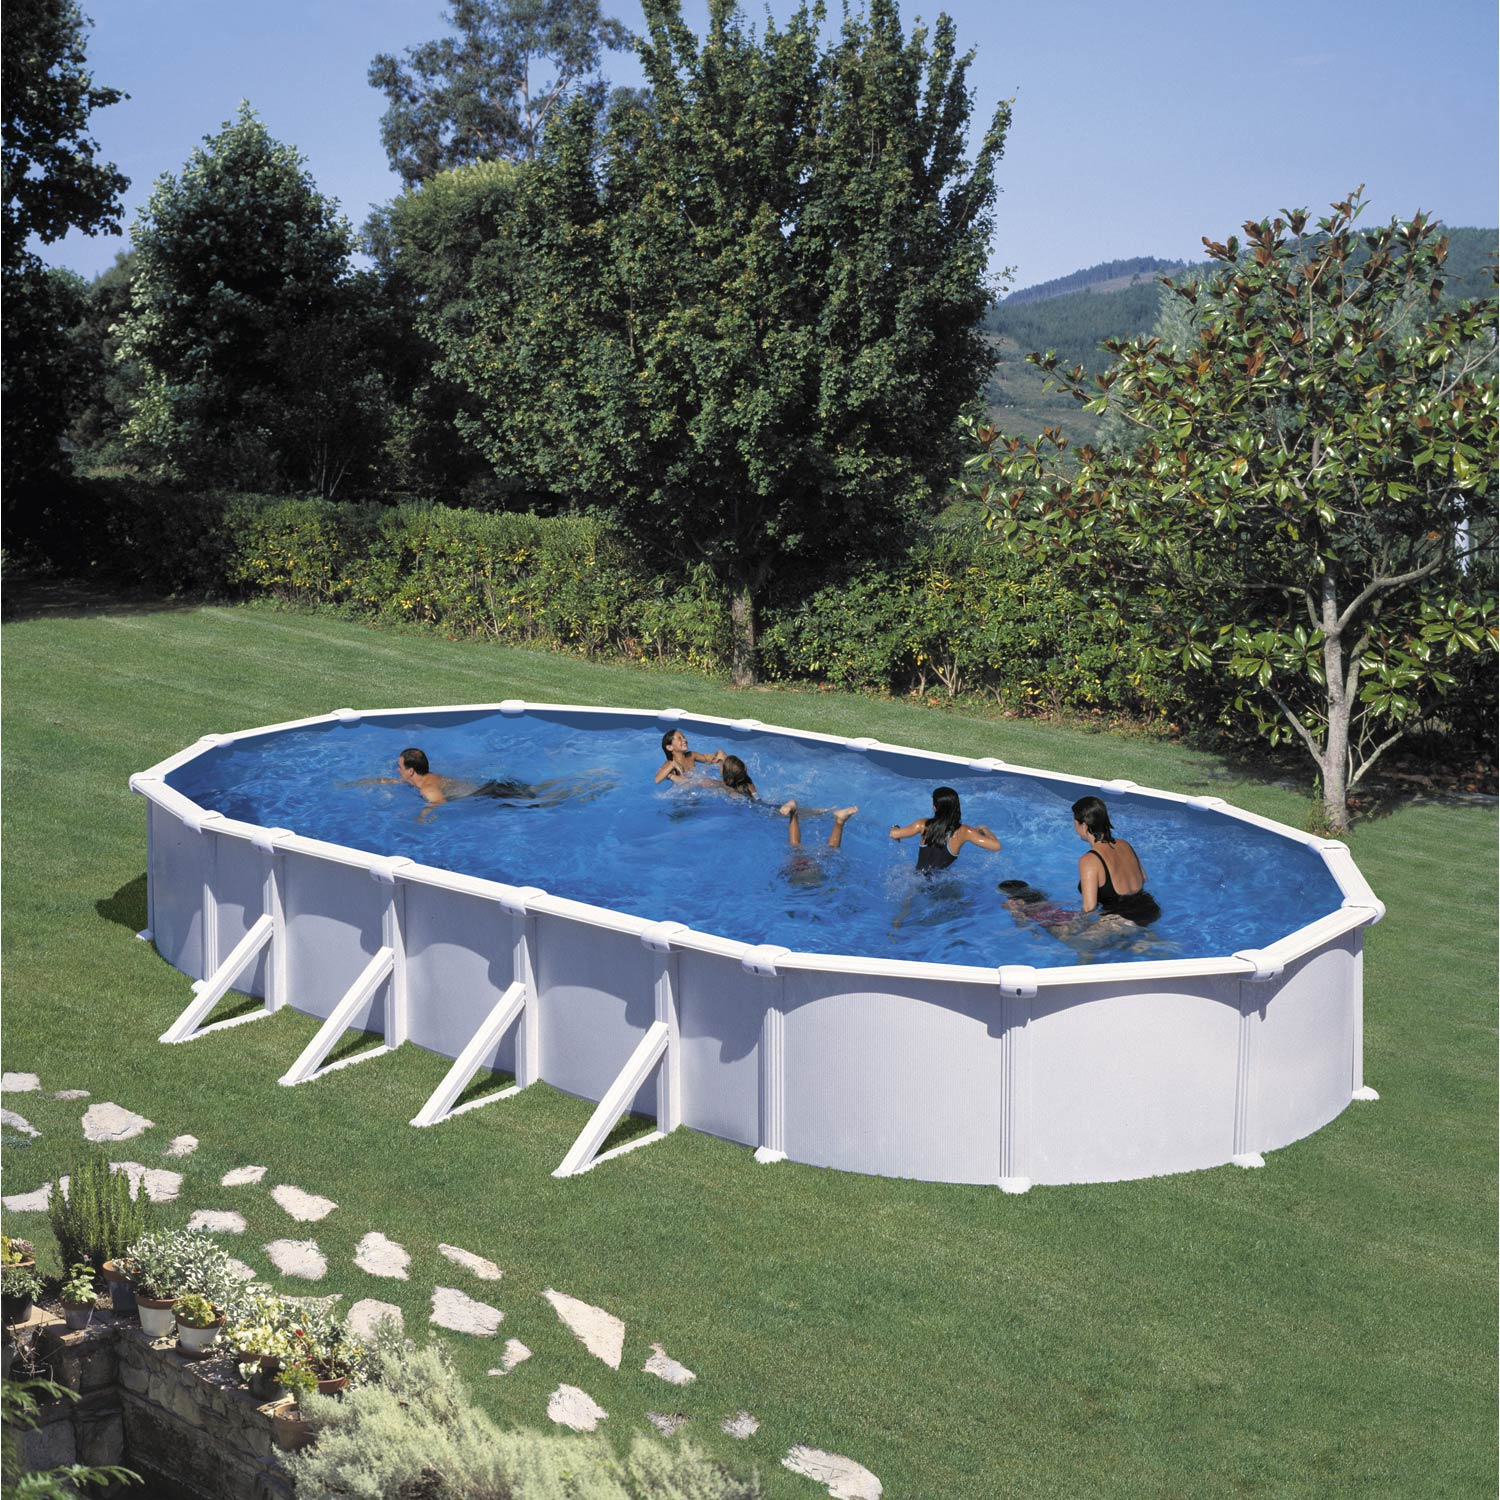 Piscine coque leroy merlin leroy merlin piscine hors sol for Aspirateur piscine leroy merlin